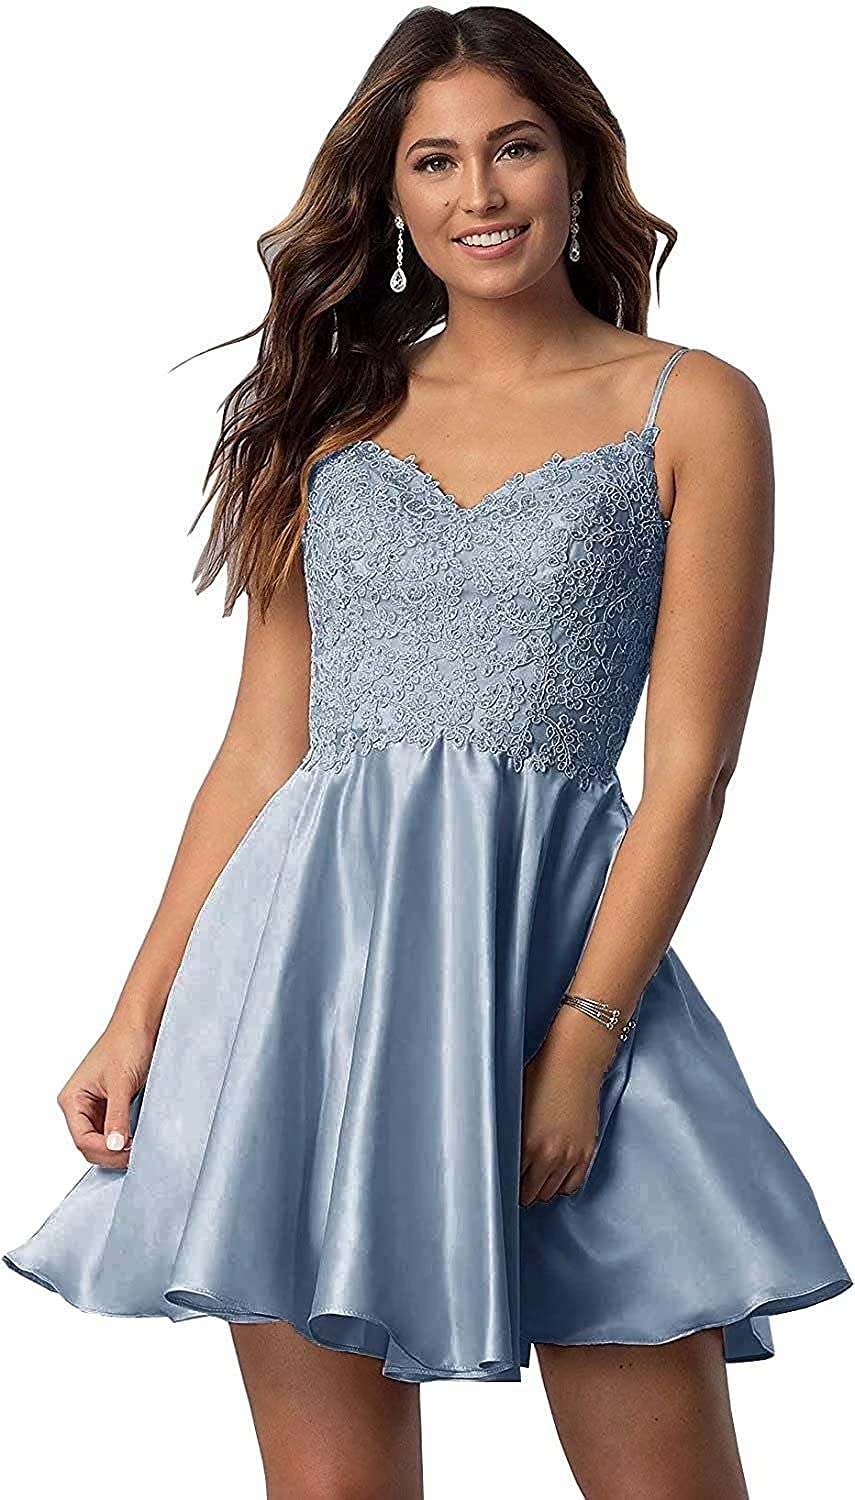 X/L Short Spaghetti Straps Homecoming Dresses Lace Appliques Beaded Satin Evening Prom Gown with Pockets Cocktail Dress